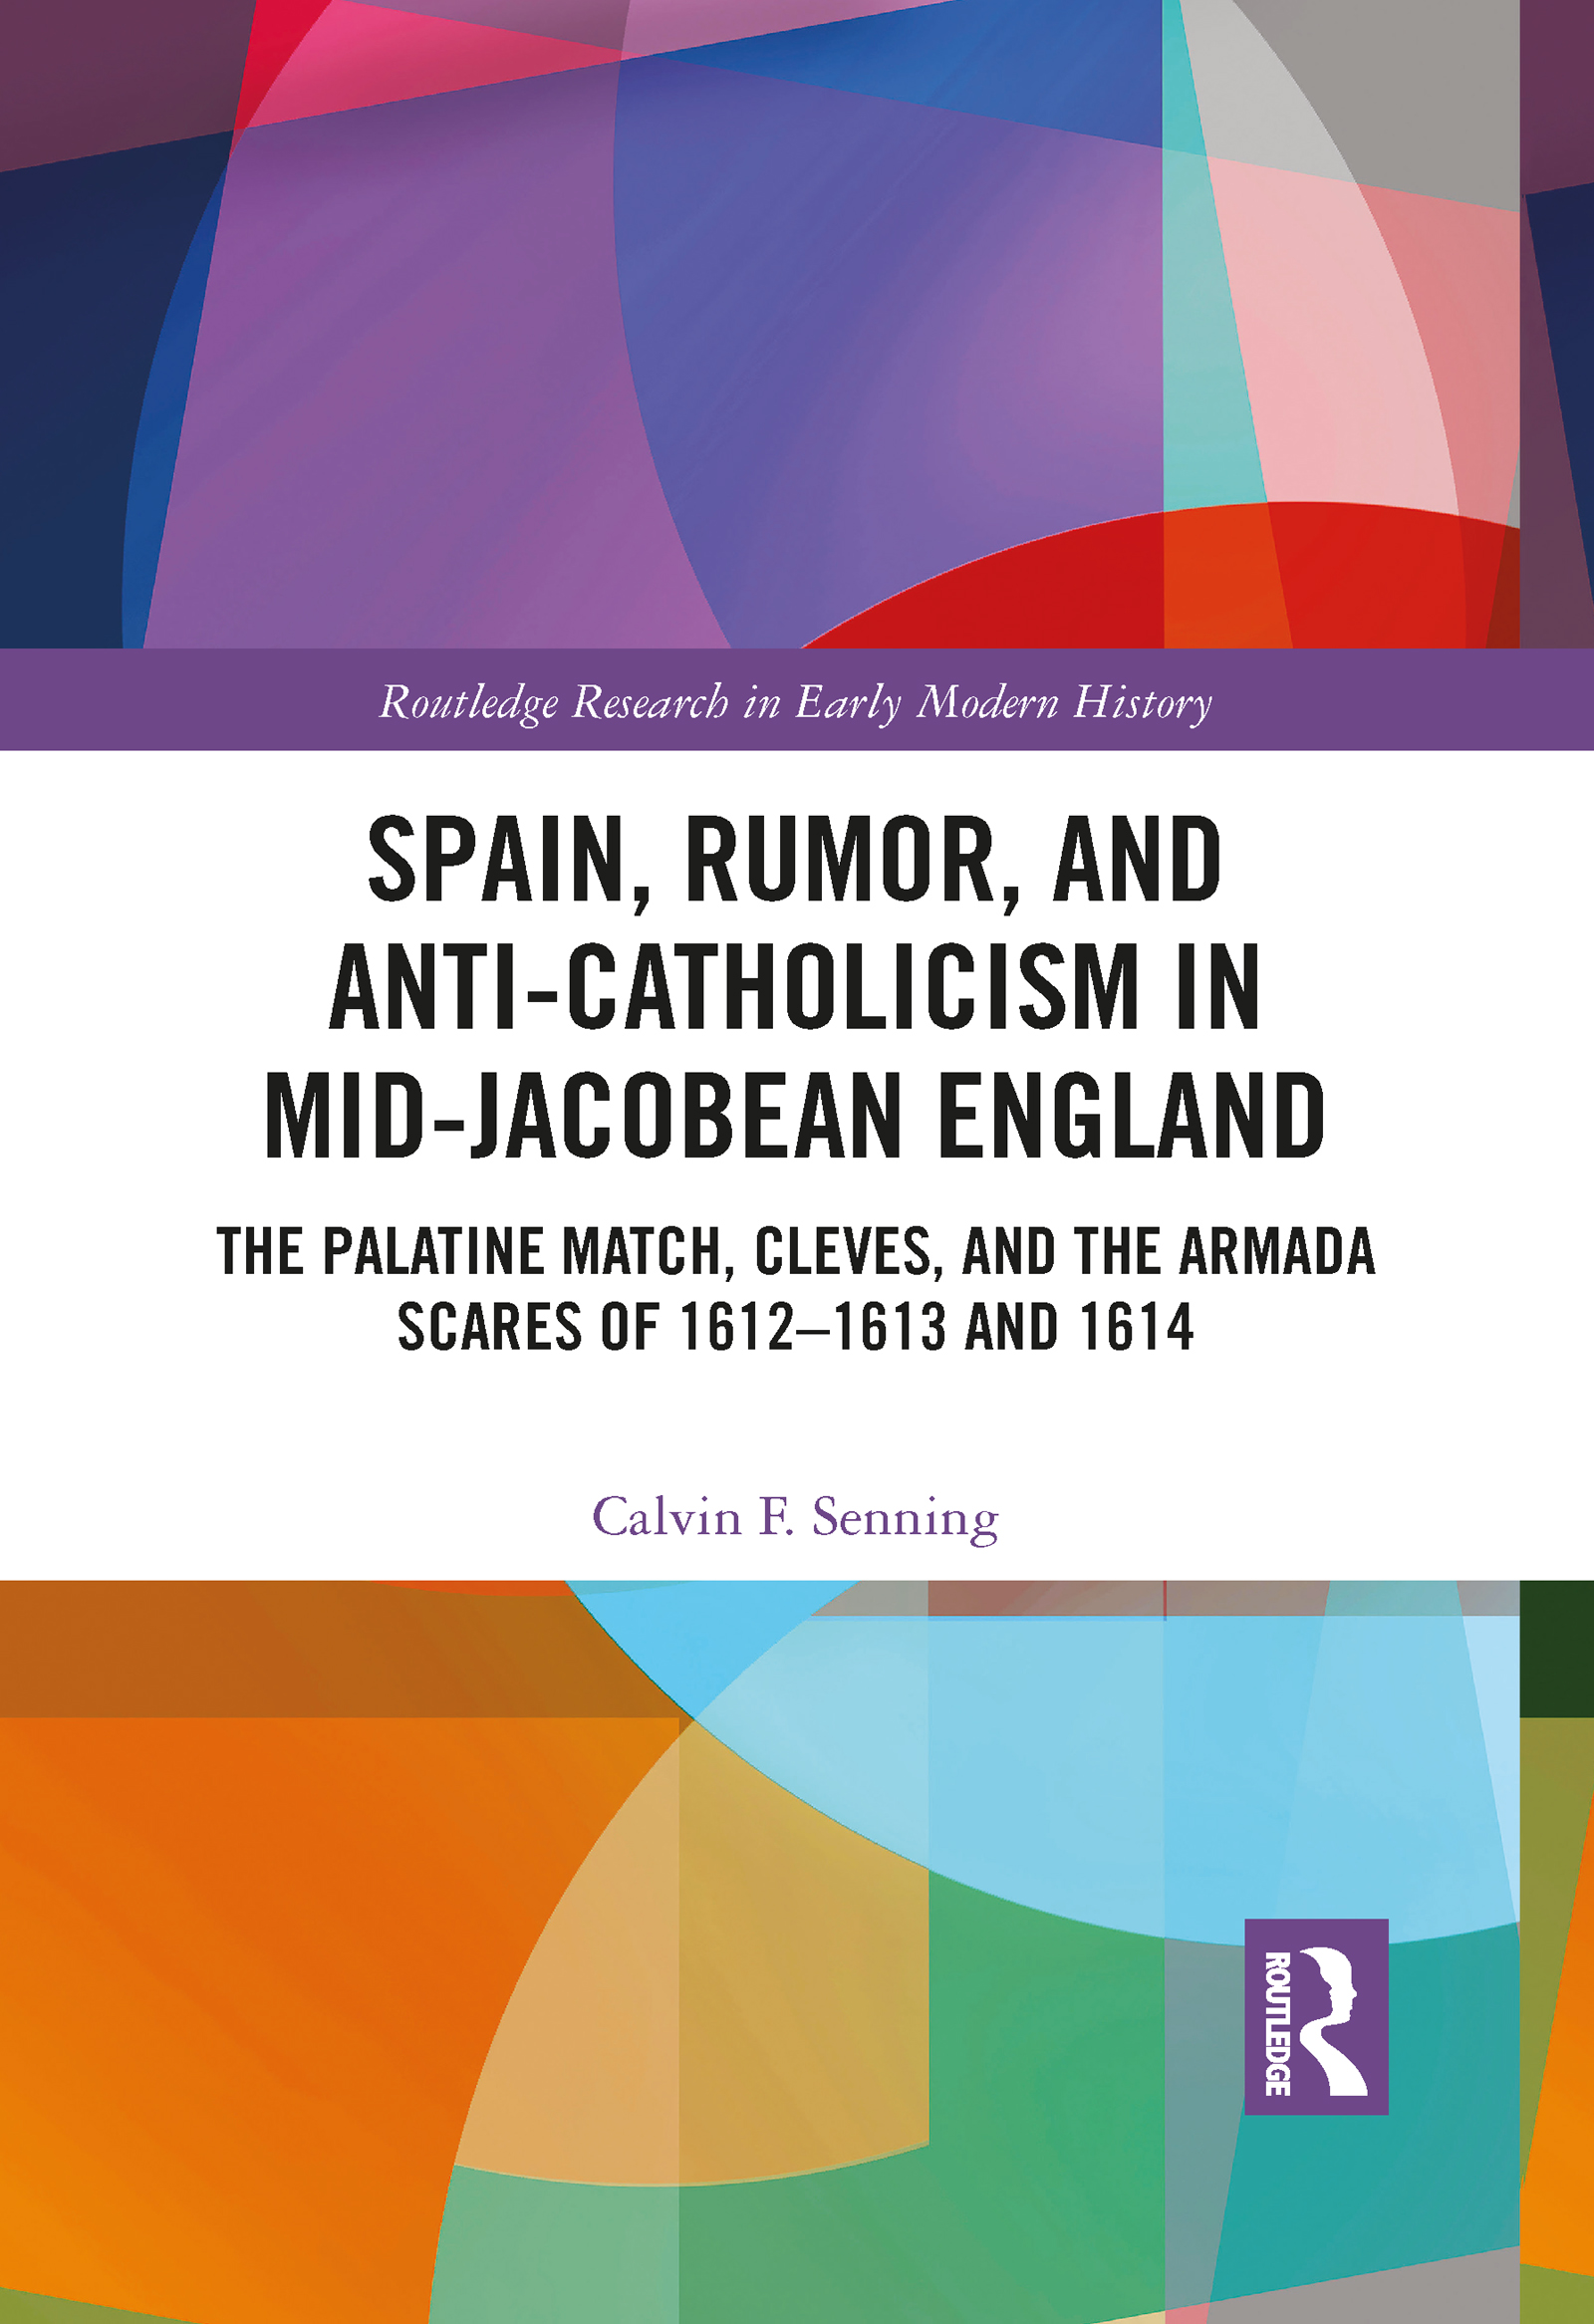 Spain, Rumor, and Anti-Catholicism in Mid-Jacobean England